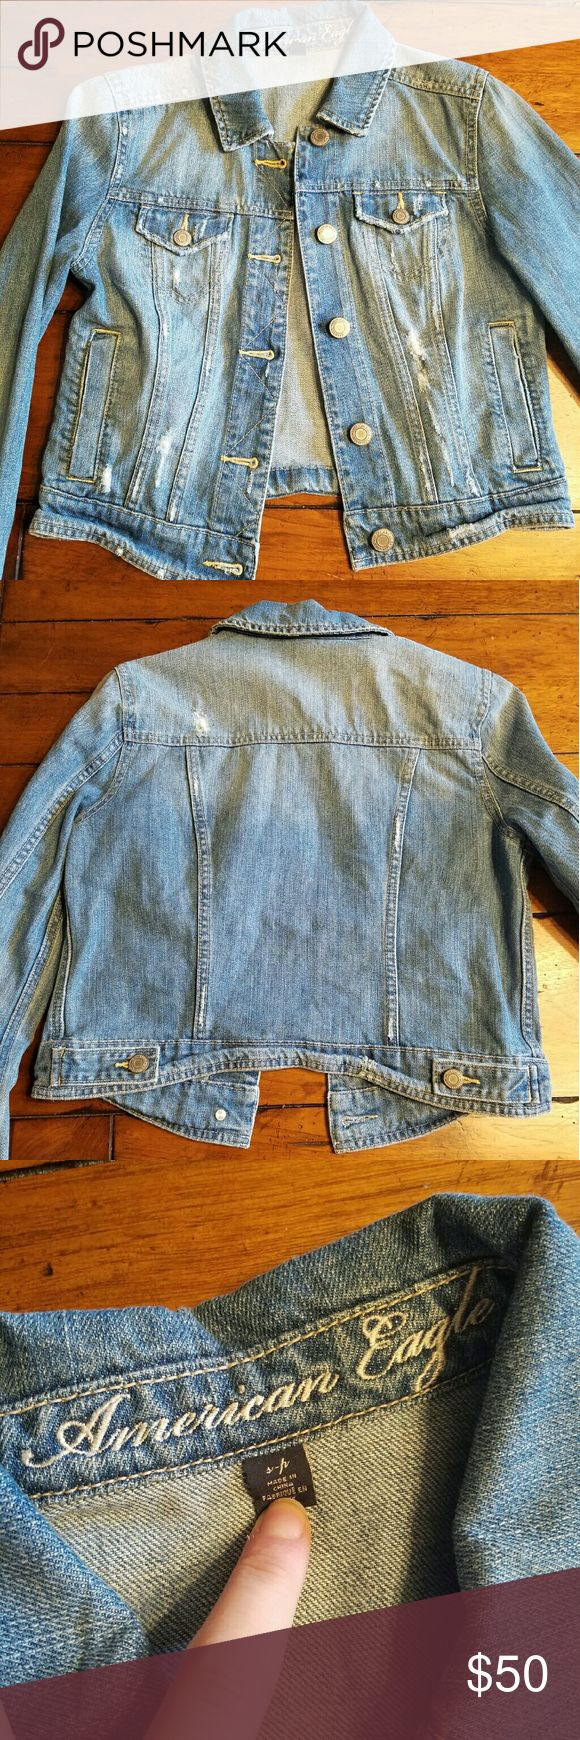 NWOT Distressed AE jacket NWOT Distressed AE jacket with silver buttons & four useable pockets. Never worn! Was a gift & I just dont wear jean jackets!   Entire closet is bogo 50% off or use the offer button! American Eagle Outfitters Jackets & Coats Jean Jackets